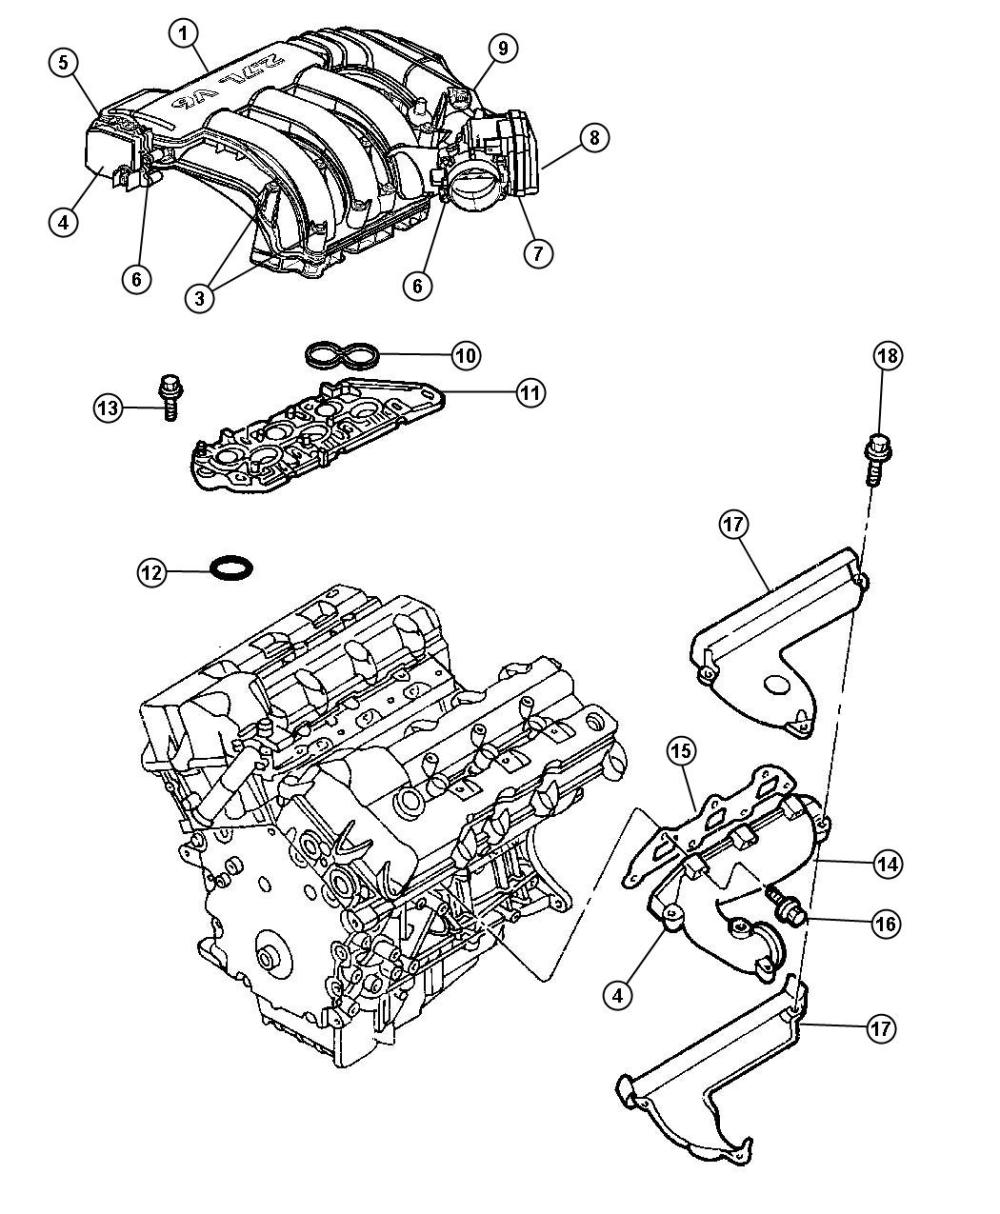 medium resolution of 2007 dodge nitro 3 7l engine diagram wiring diagram third level rh 9 8 15 jacobwinterstein com diagram of dodge nitro engine dodge nitro 3 7 engine diagram